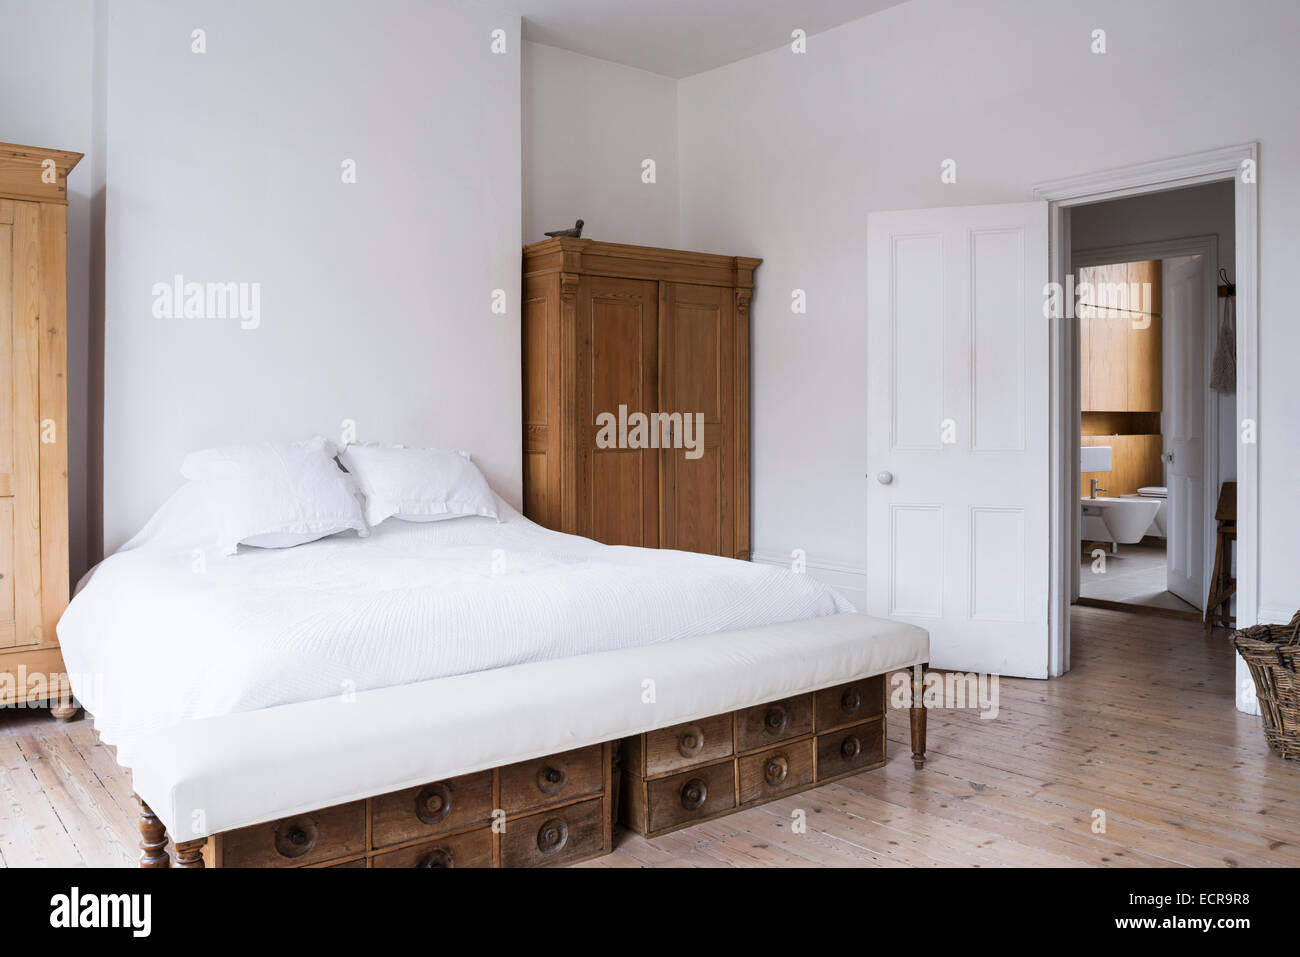 Large white bed in minimal white bedroom with wooden wardrobes and flooring - Stock Image